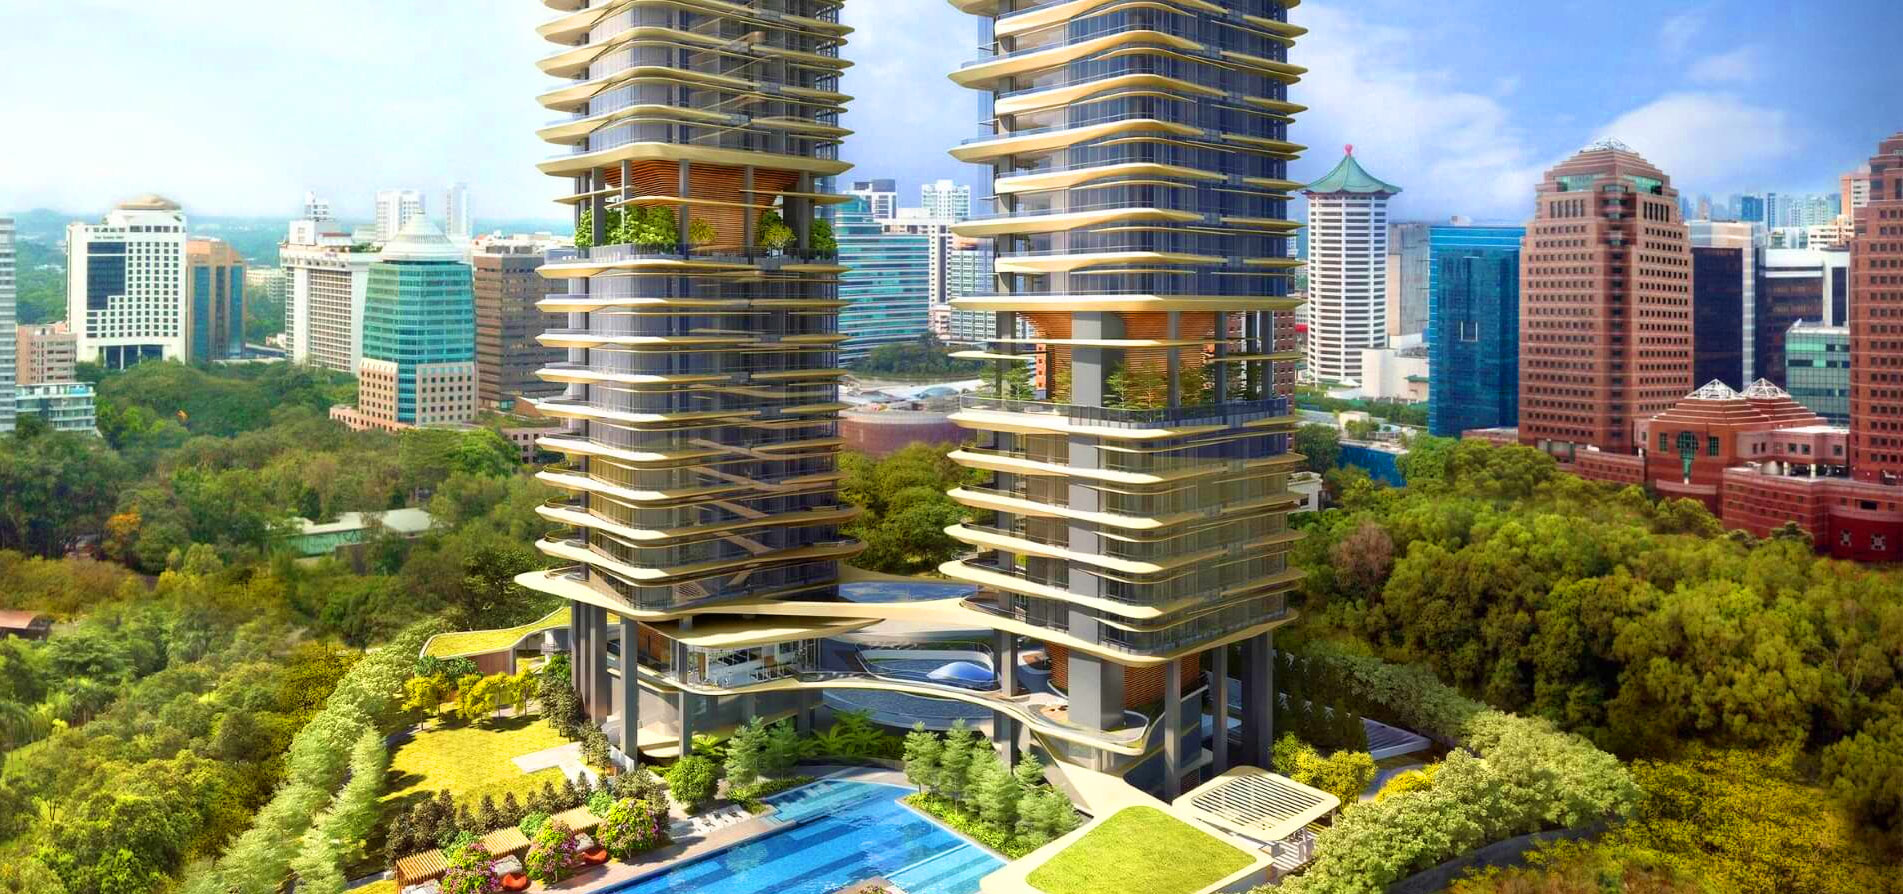 Image result for New Luxury Condo Orchard Singapore